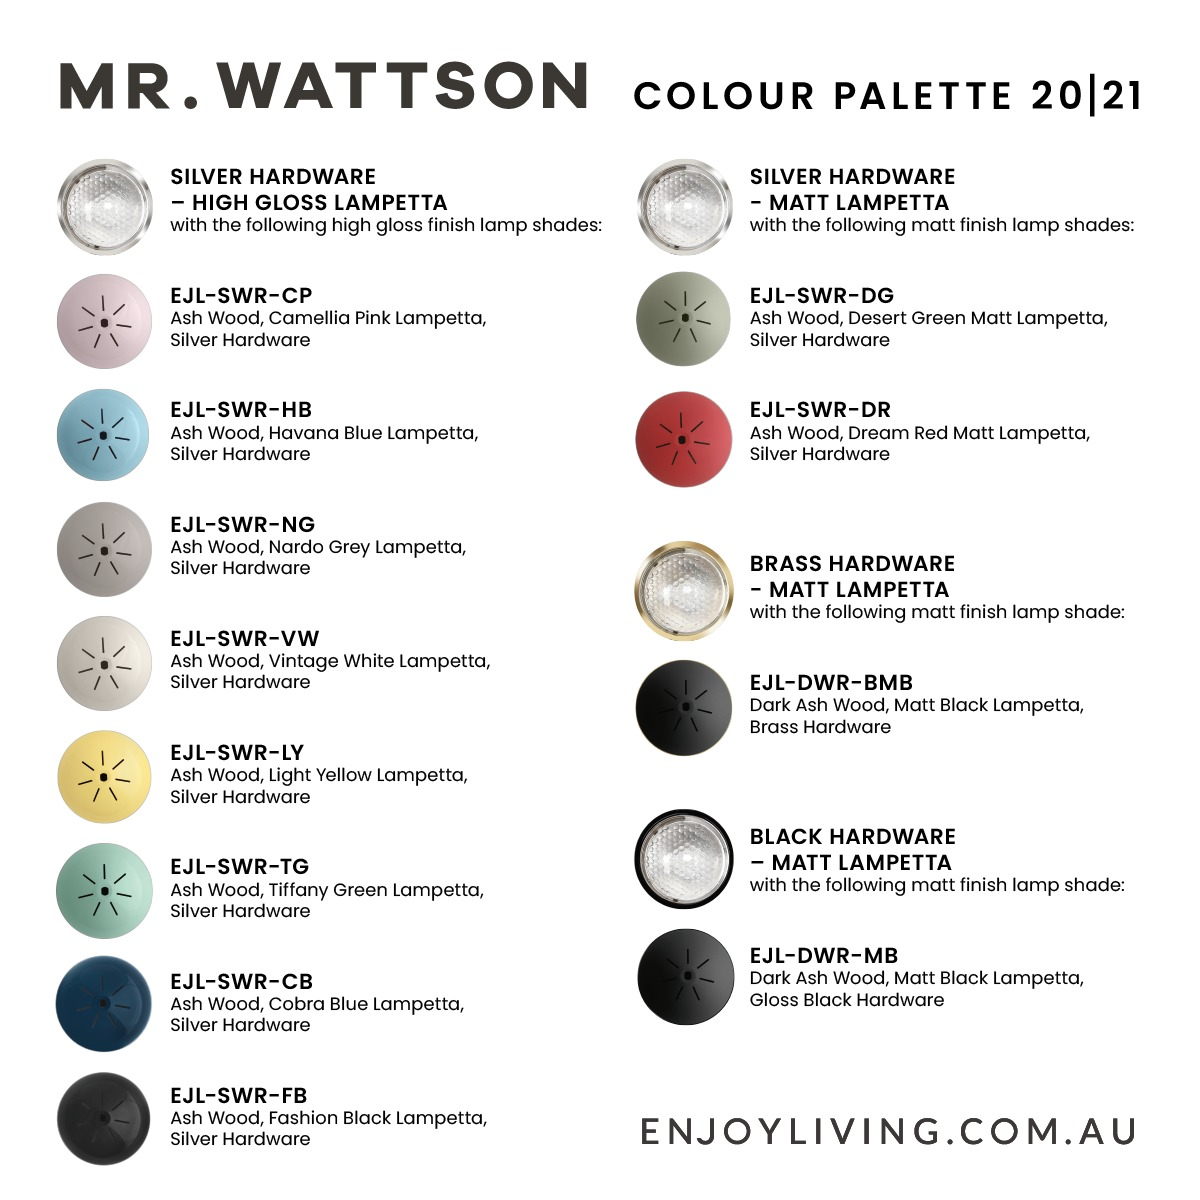 Mr. Wattson colour palette Photography and colour matching